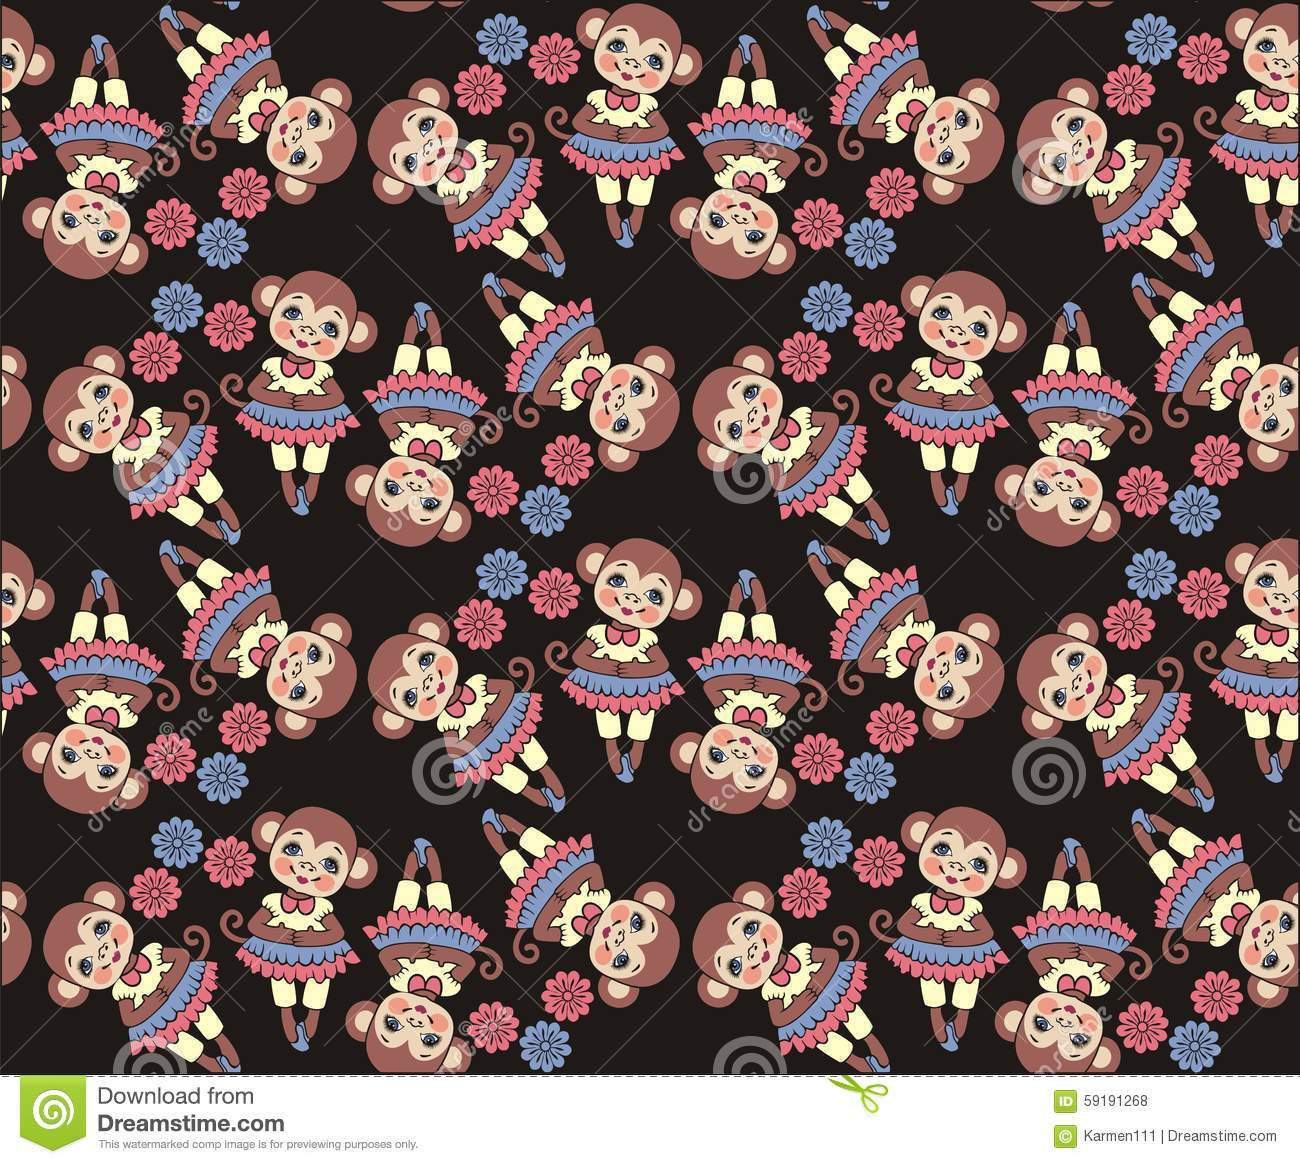 new year monkey 2016 seamless pattern fabric winter christmas design